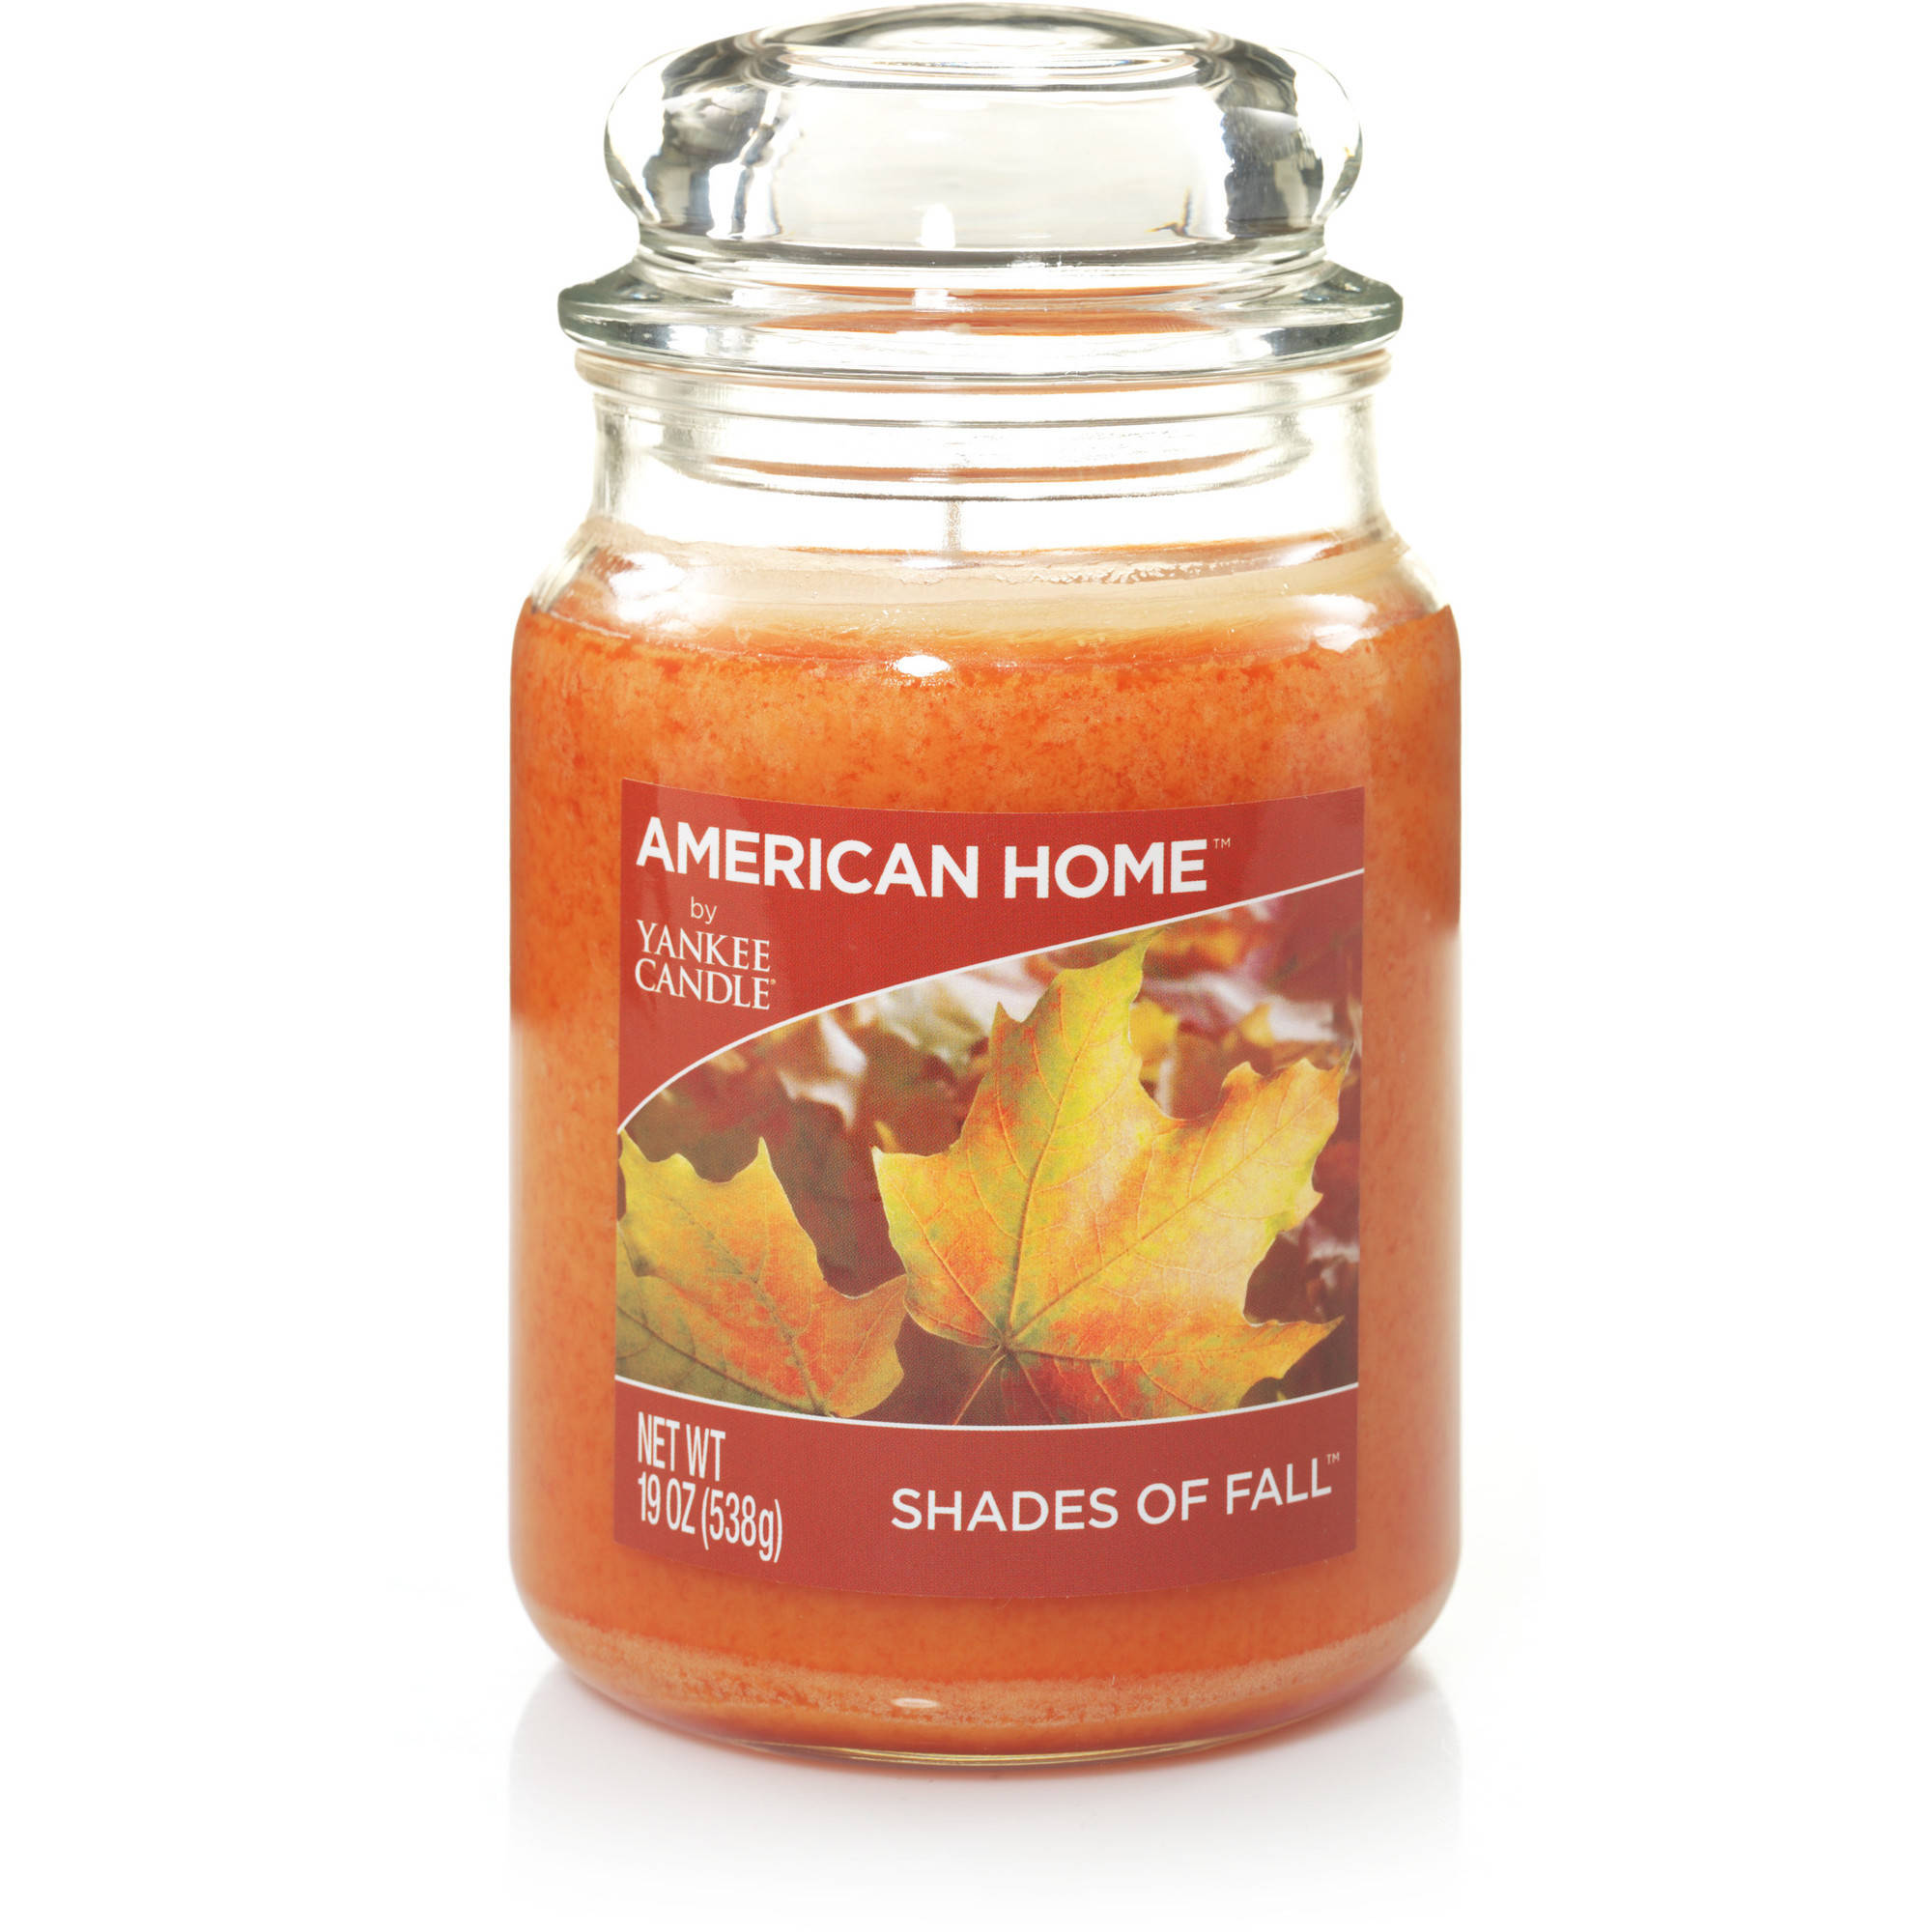 American Home by Yankee Candle Shades of Fall, 19 oz Large Jar